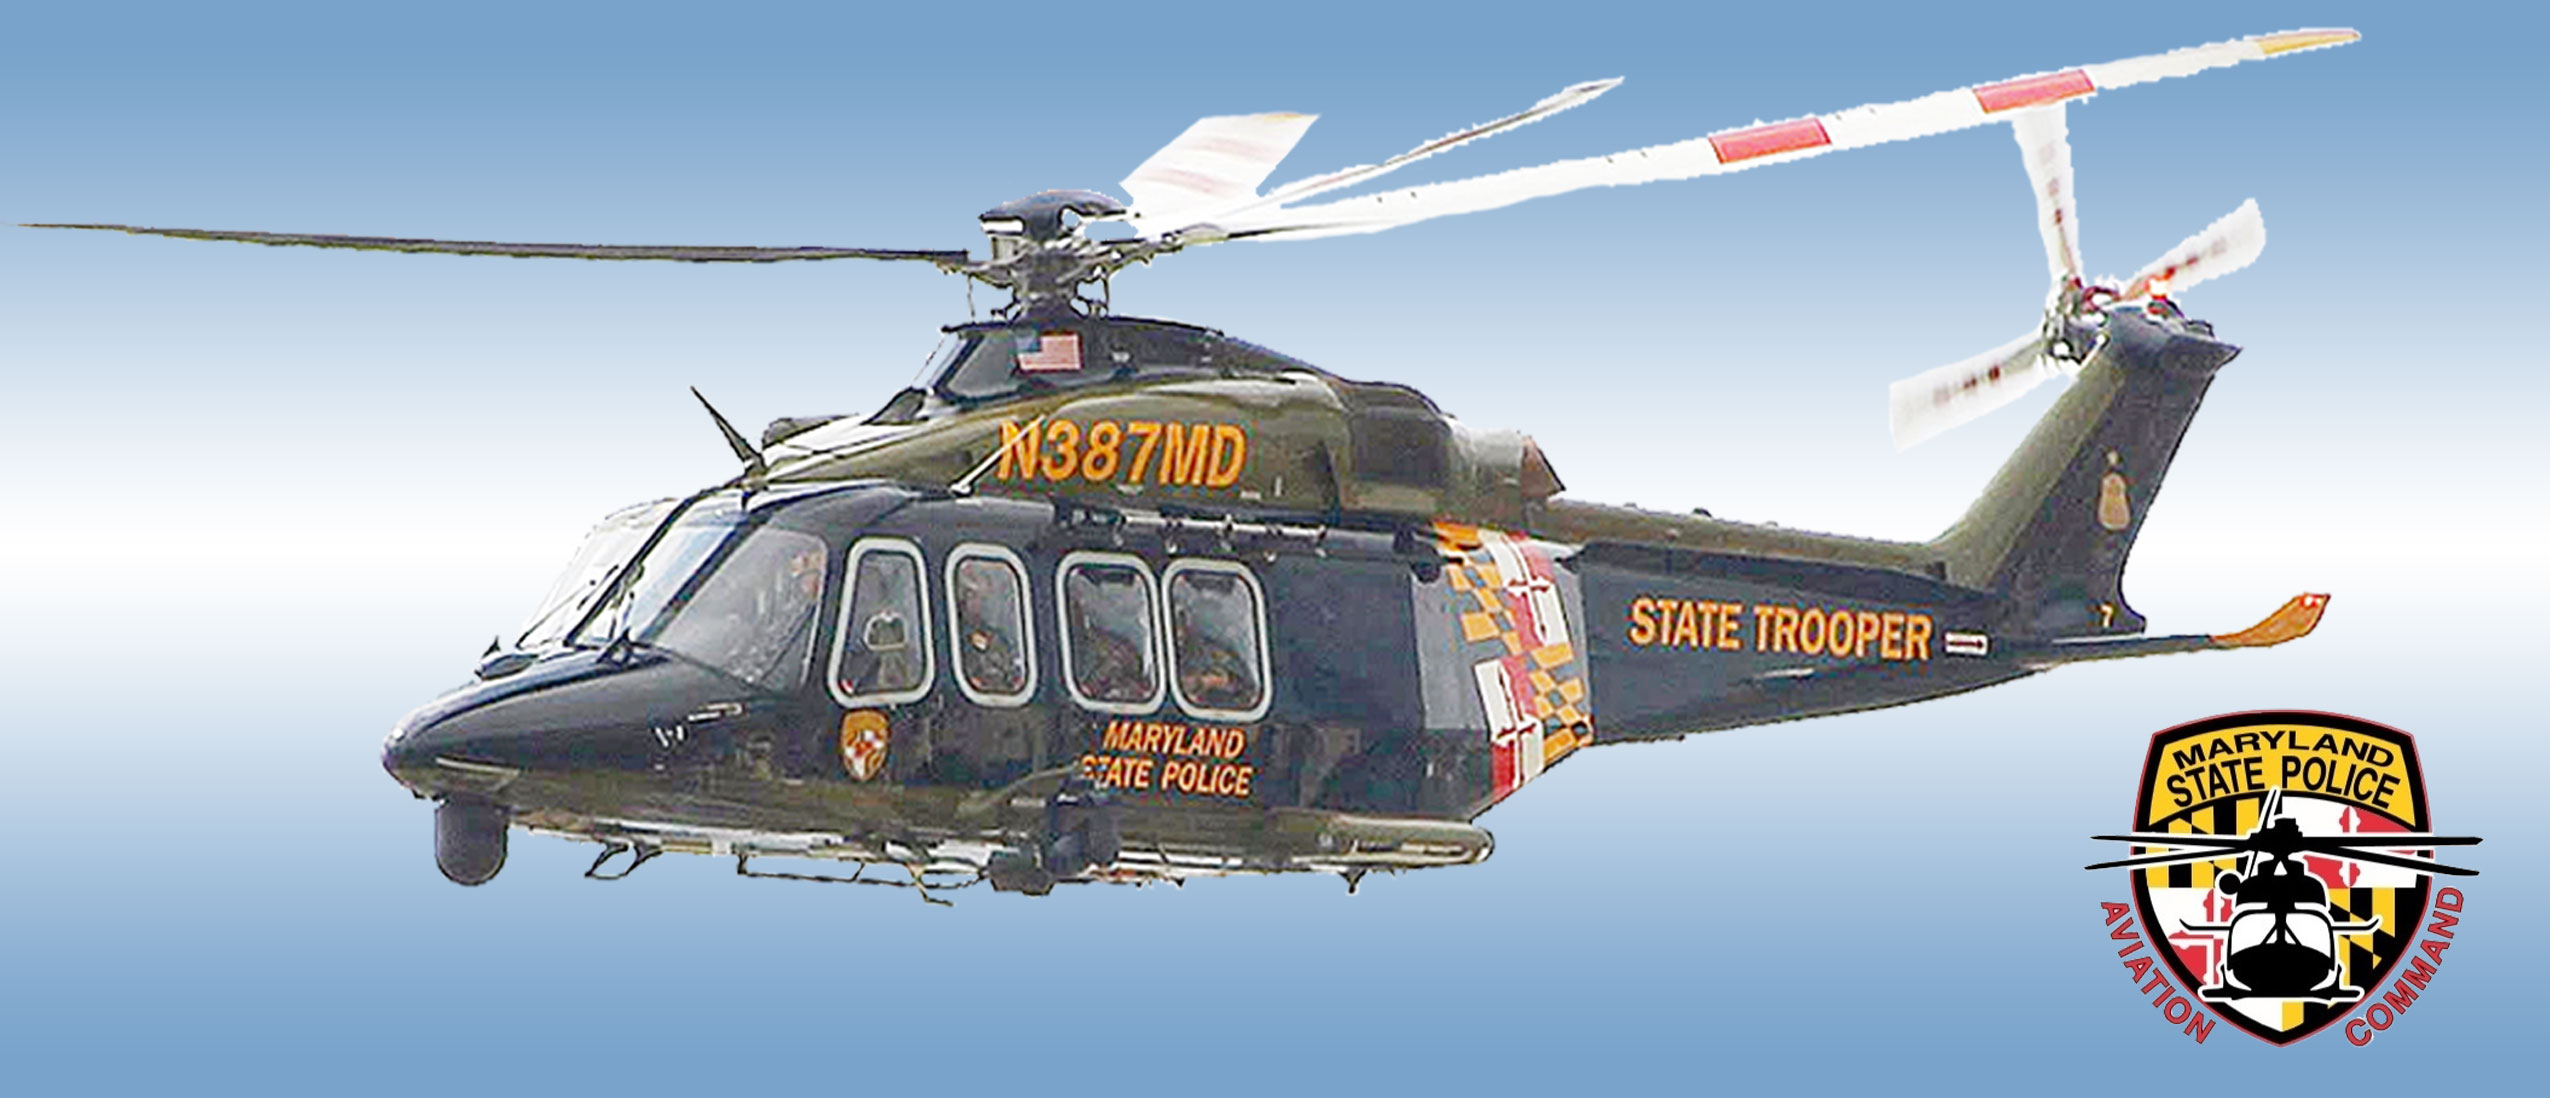 State police helicopter photo